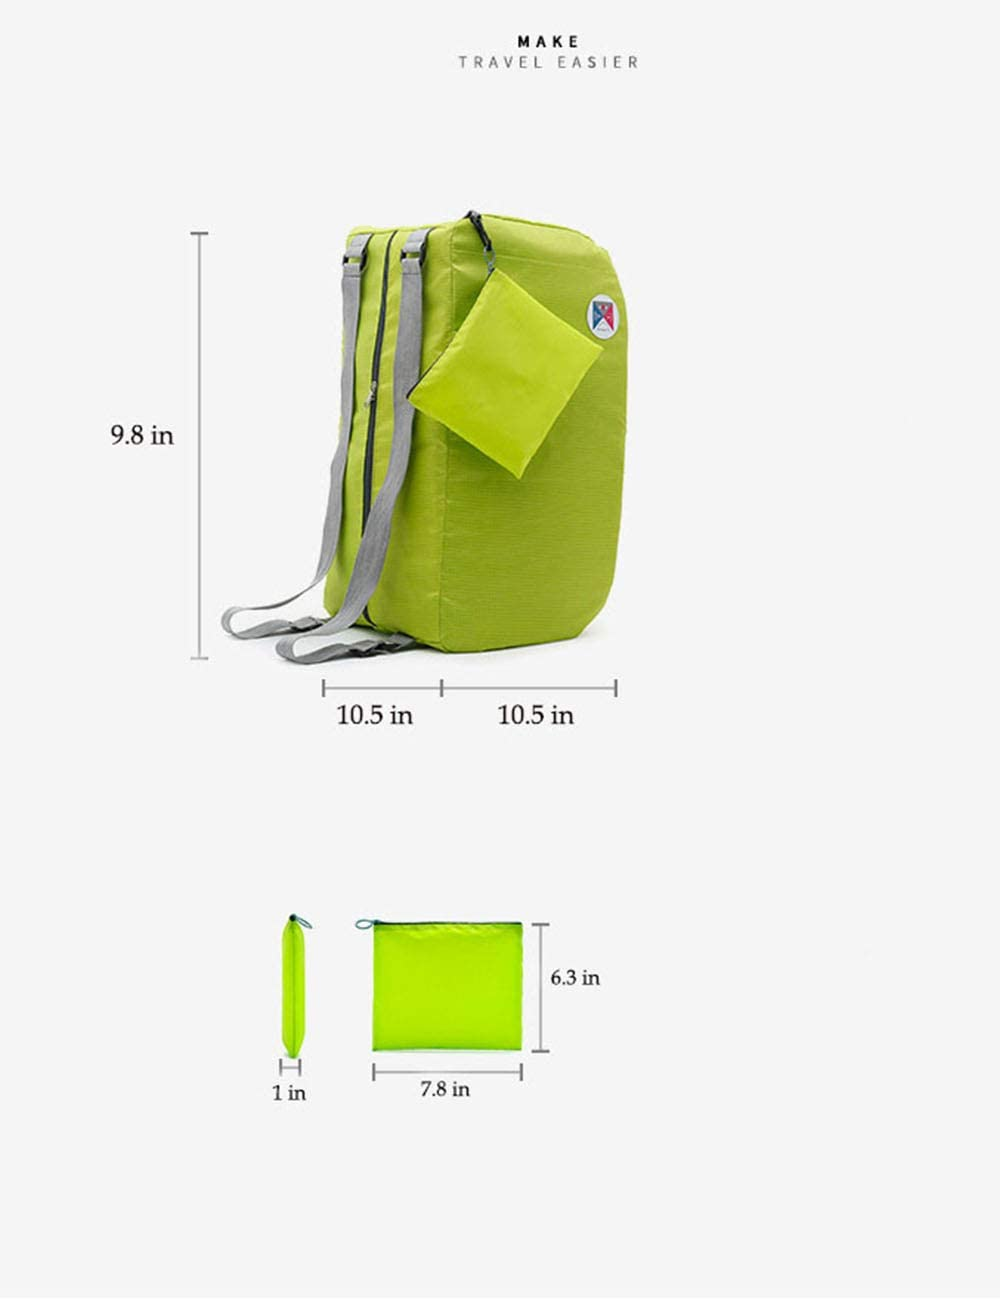 Green 8000MC Outdoor Indoor Sports Fitness Luggage Yoga Backpack Short-distance Travel Foldable Backpack Women Outdoor Riding Mountaineering Backpack Luggage Backpack Luggage Bag